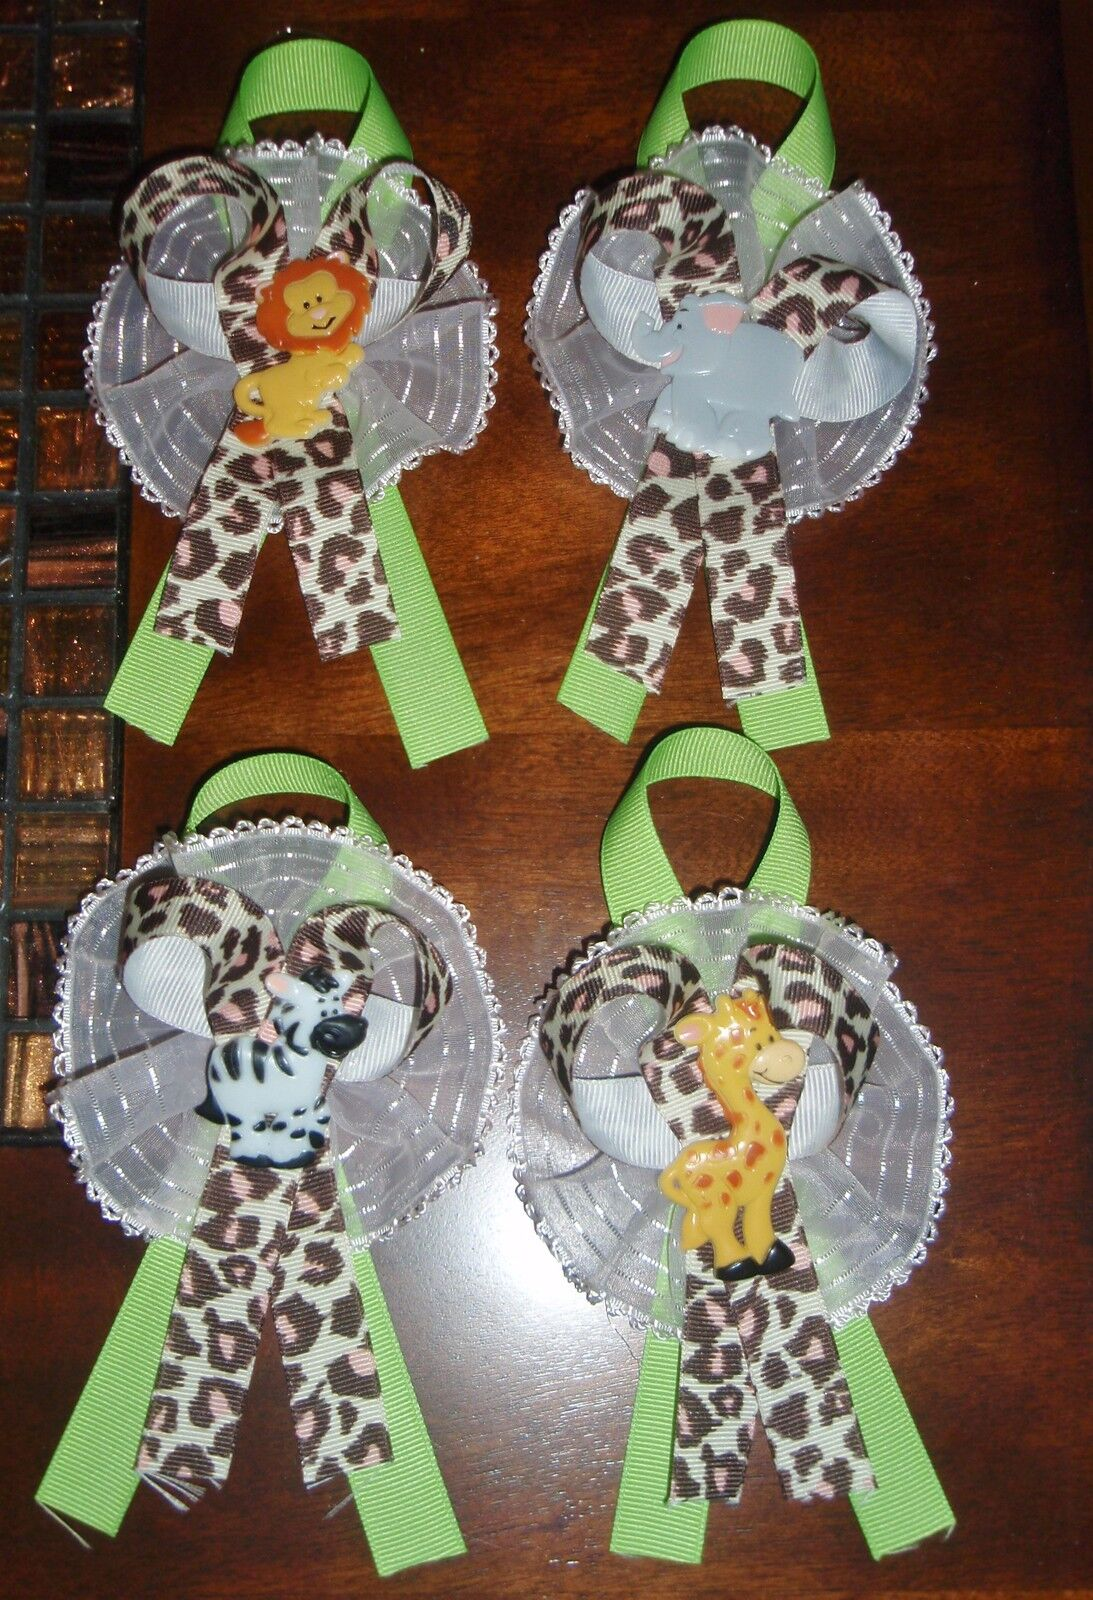 12 JUNGLE SAFARI ZOO 12 CORSAGES BABY SHOWER PARTY GIRL BOY MOTHER TO BE GIFT